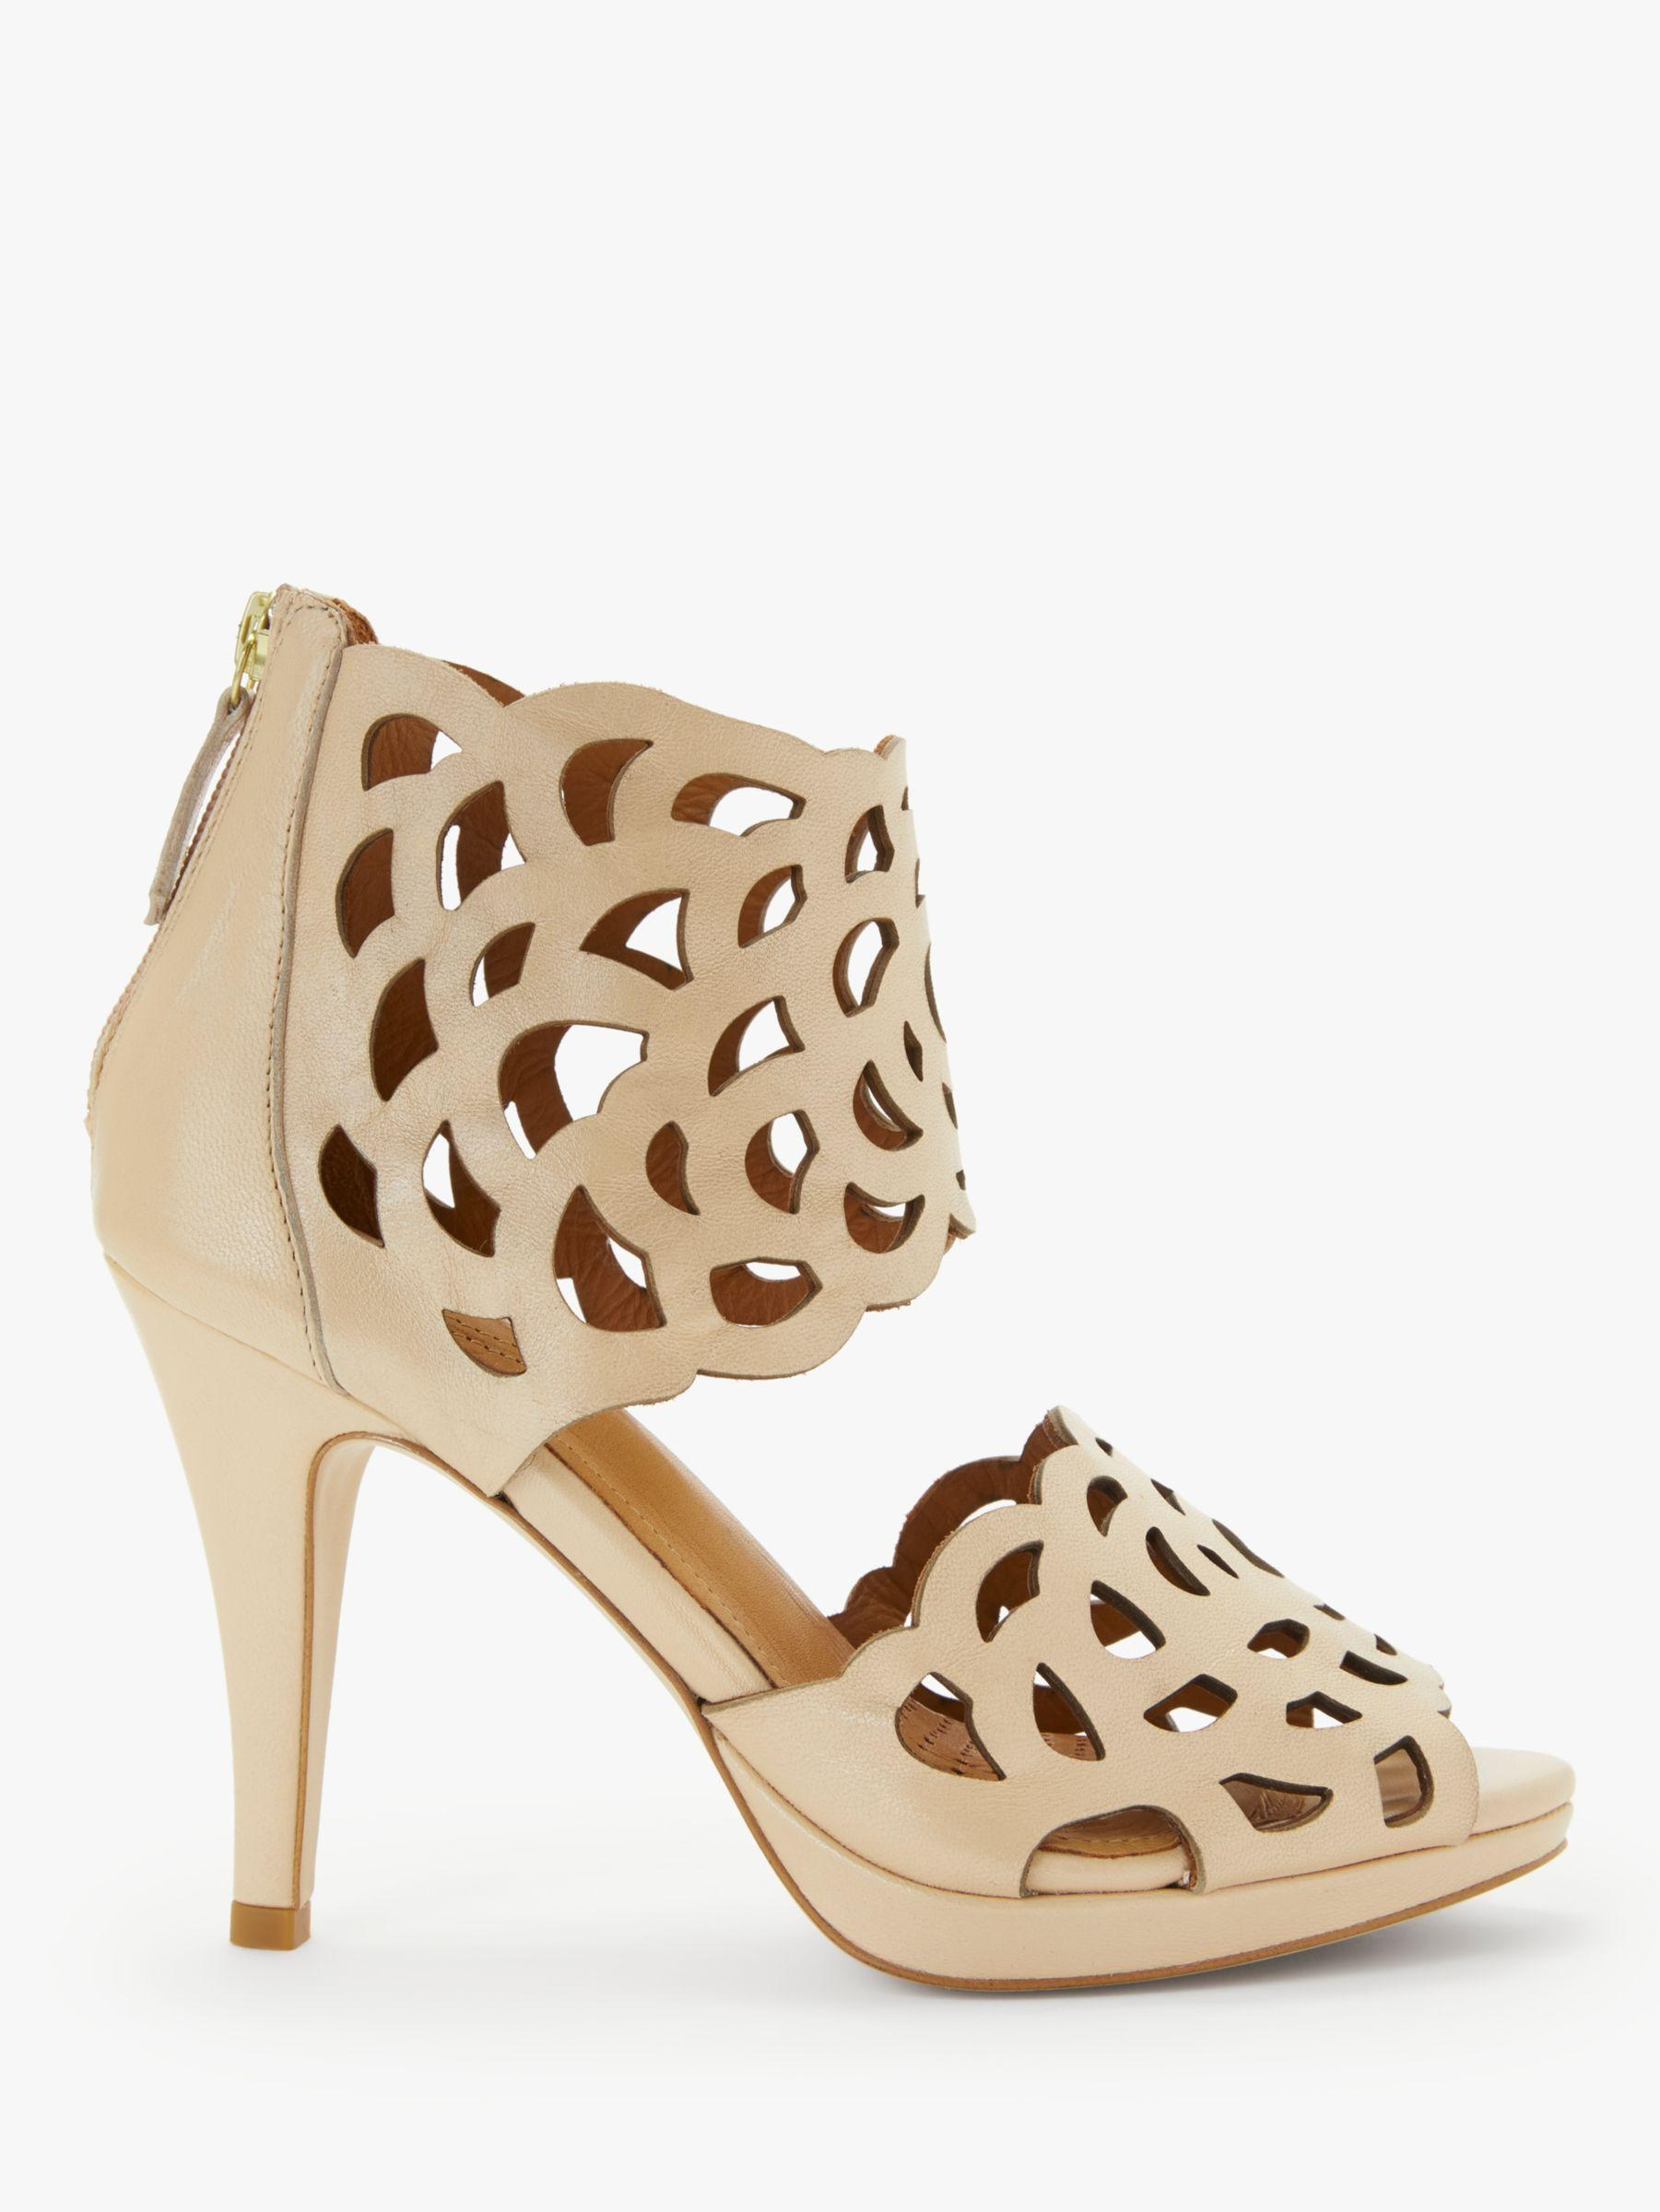 25ec12fdd40 Sargossa. Women s Natural Inspire Heeled Sandals. £275 From John Lewis and  Partners